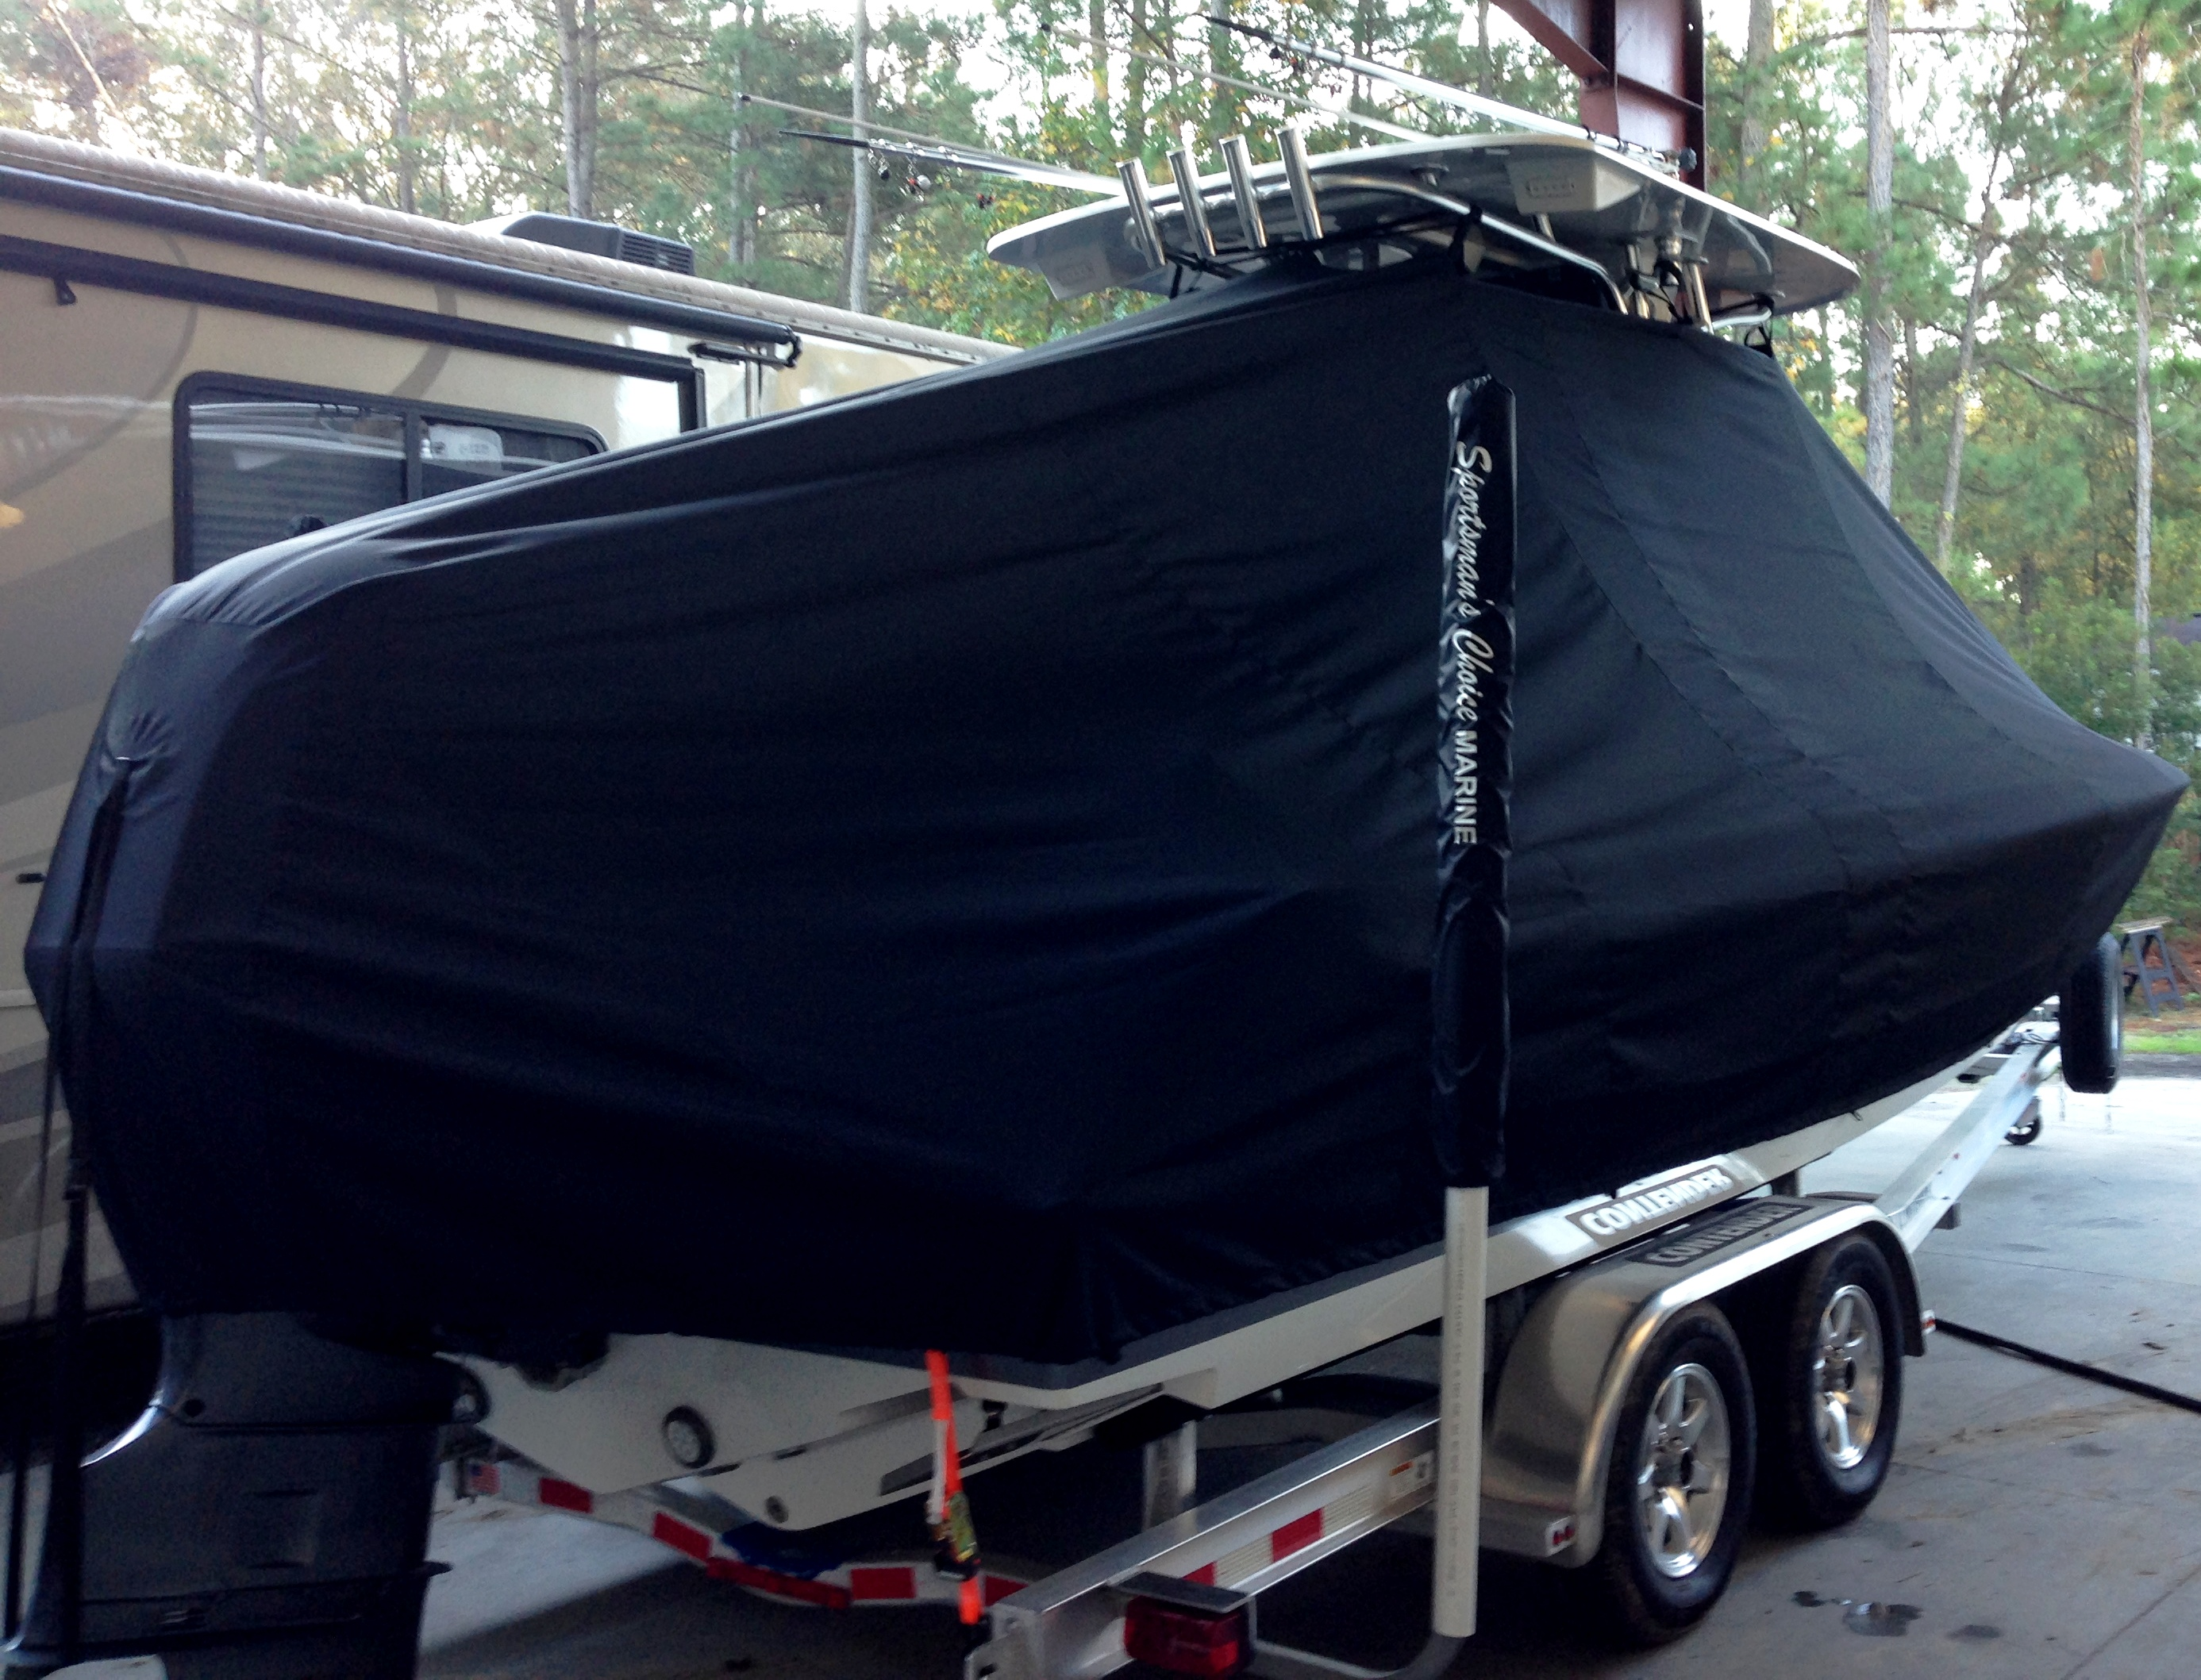 Contender 24 Sport, 19xx, TTopCovers™ T-Top boat cover, starboard rear